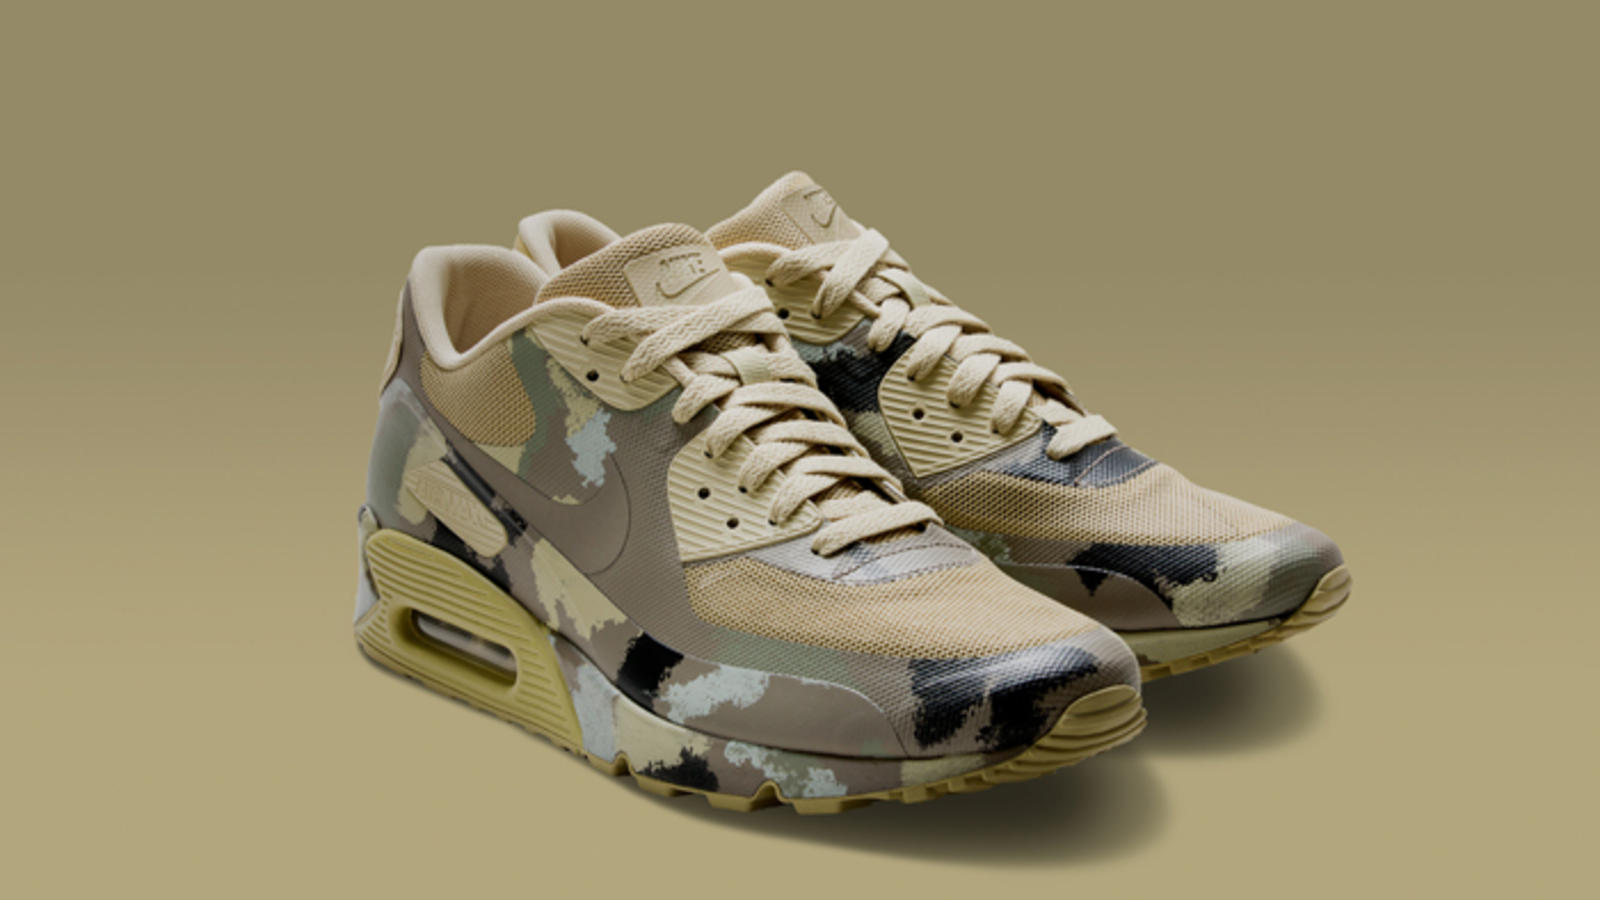 photos officielles a85b9 3400d Revealed: the Nike Air Max Camo Collection - Nike News